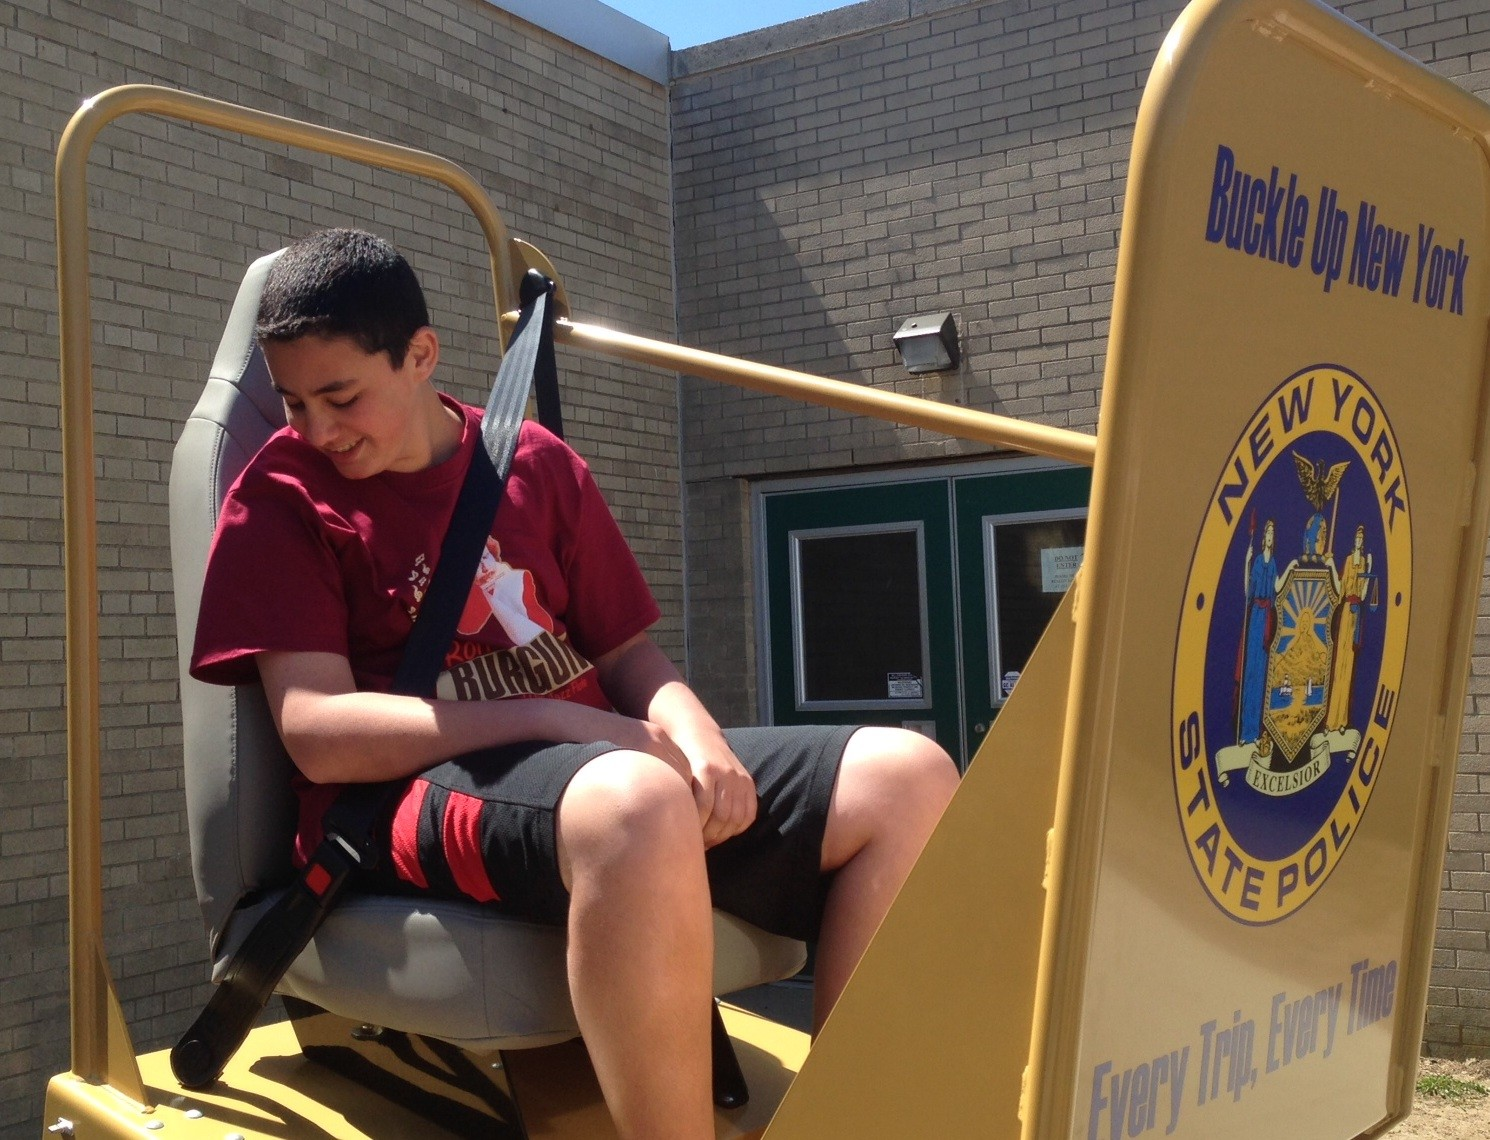 Ninth-grader Noah Tepper prepared to take the plunge on the New York State Police Department's Seat Belt Convincer.